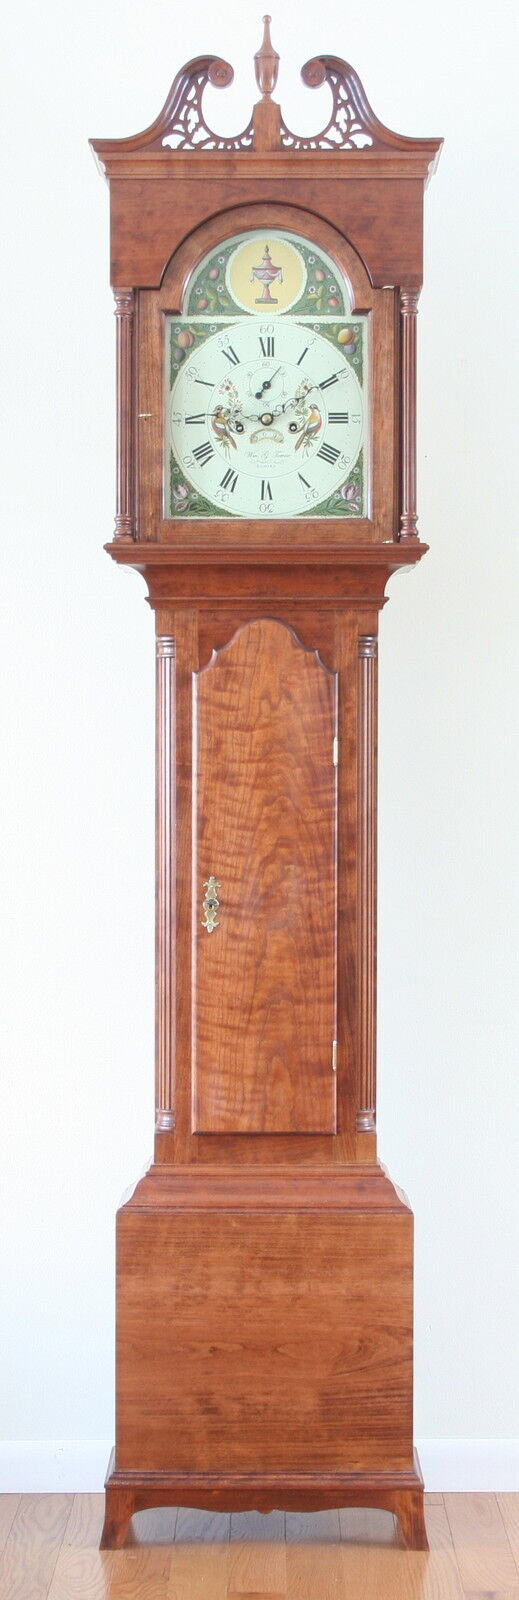 ClockTowne Grandfather Clocks